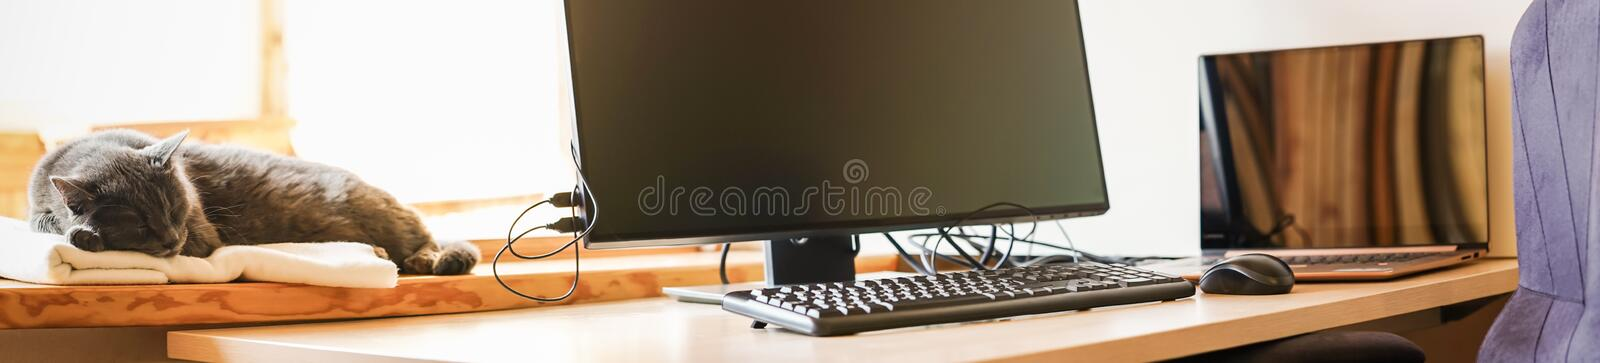 Working place with IT equipment at home. Flexible hours and remote working concept. Panorama. Working place with IT equipment at home is used as homebase office stock photo